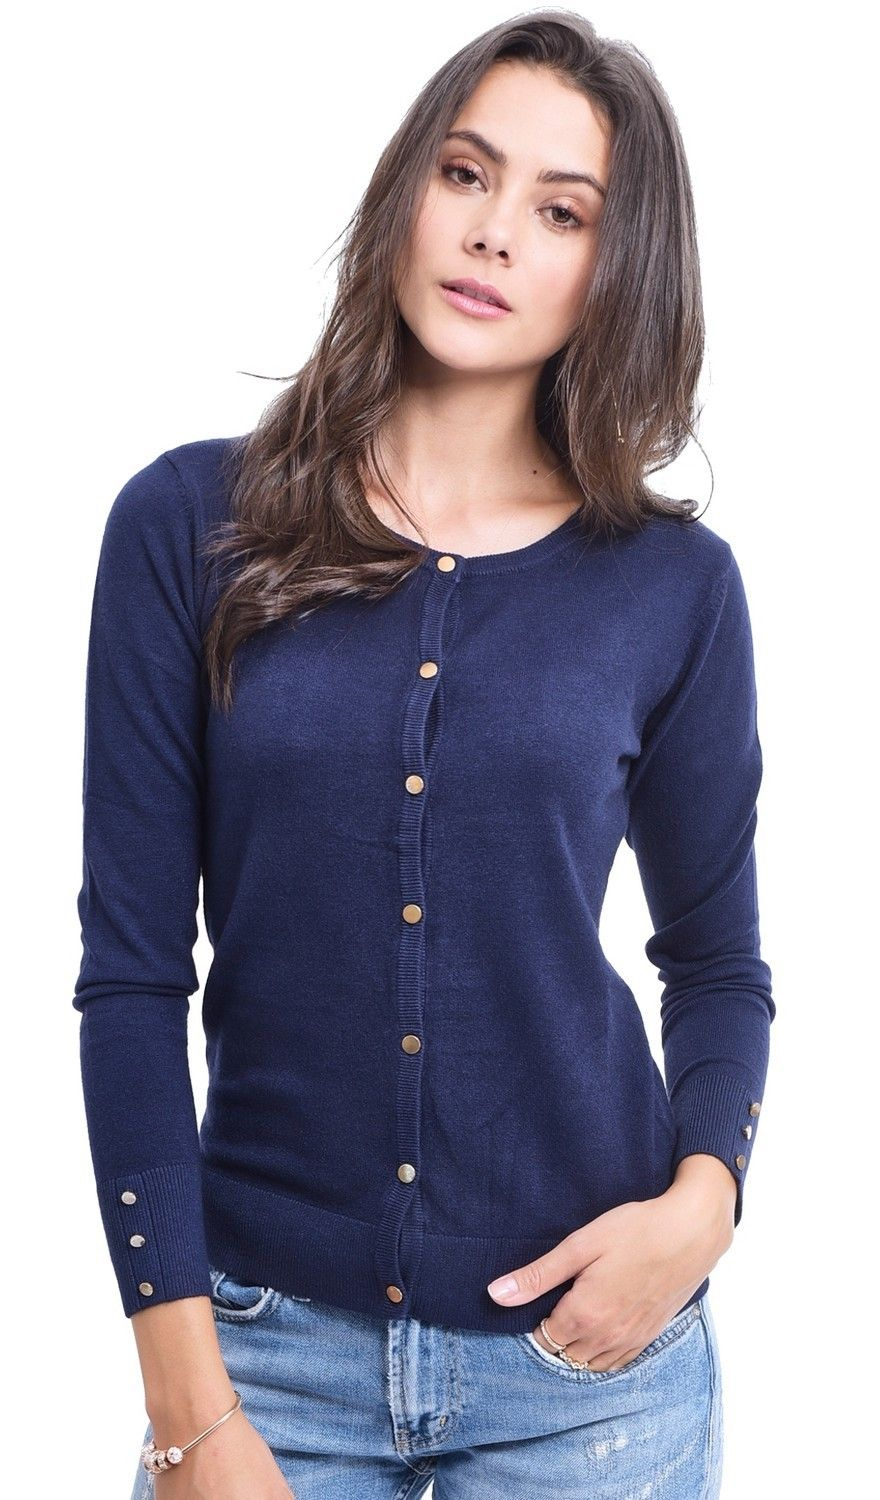 Assuili Round Neck Cardigan with Gold Buttons in Navy